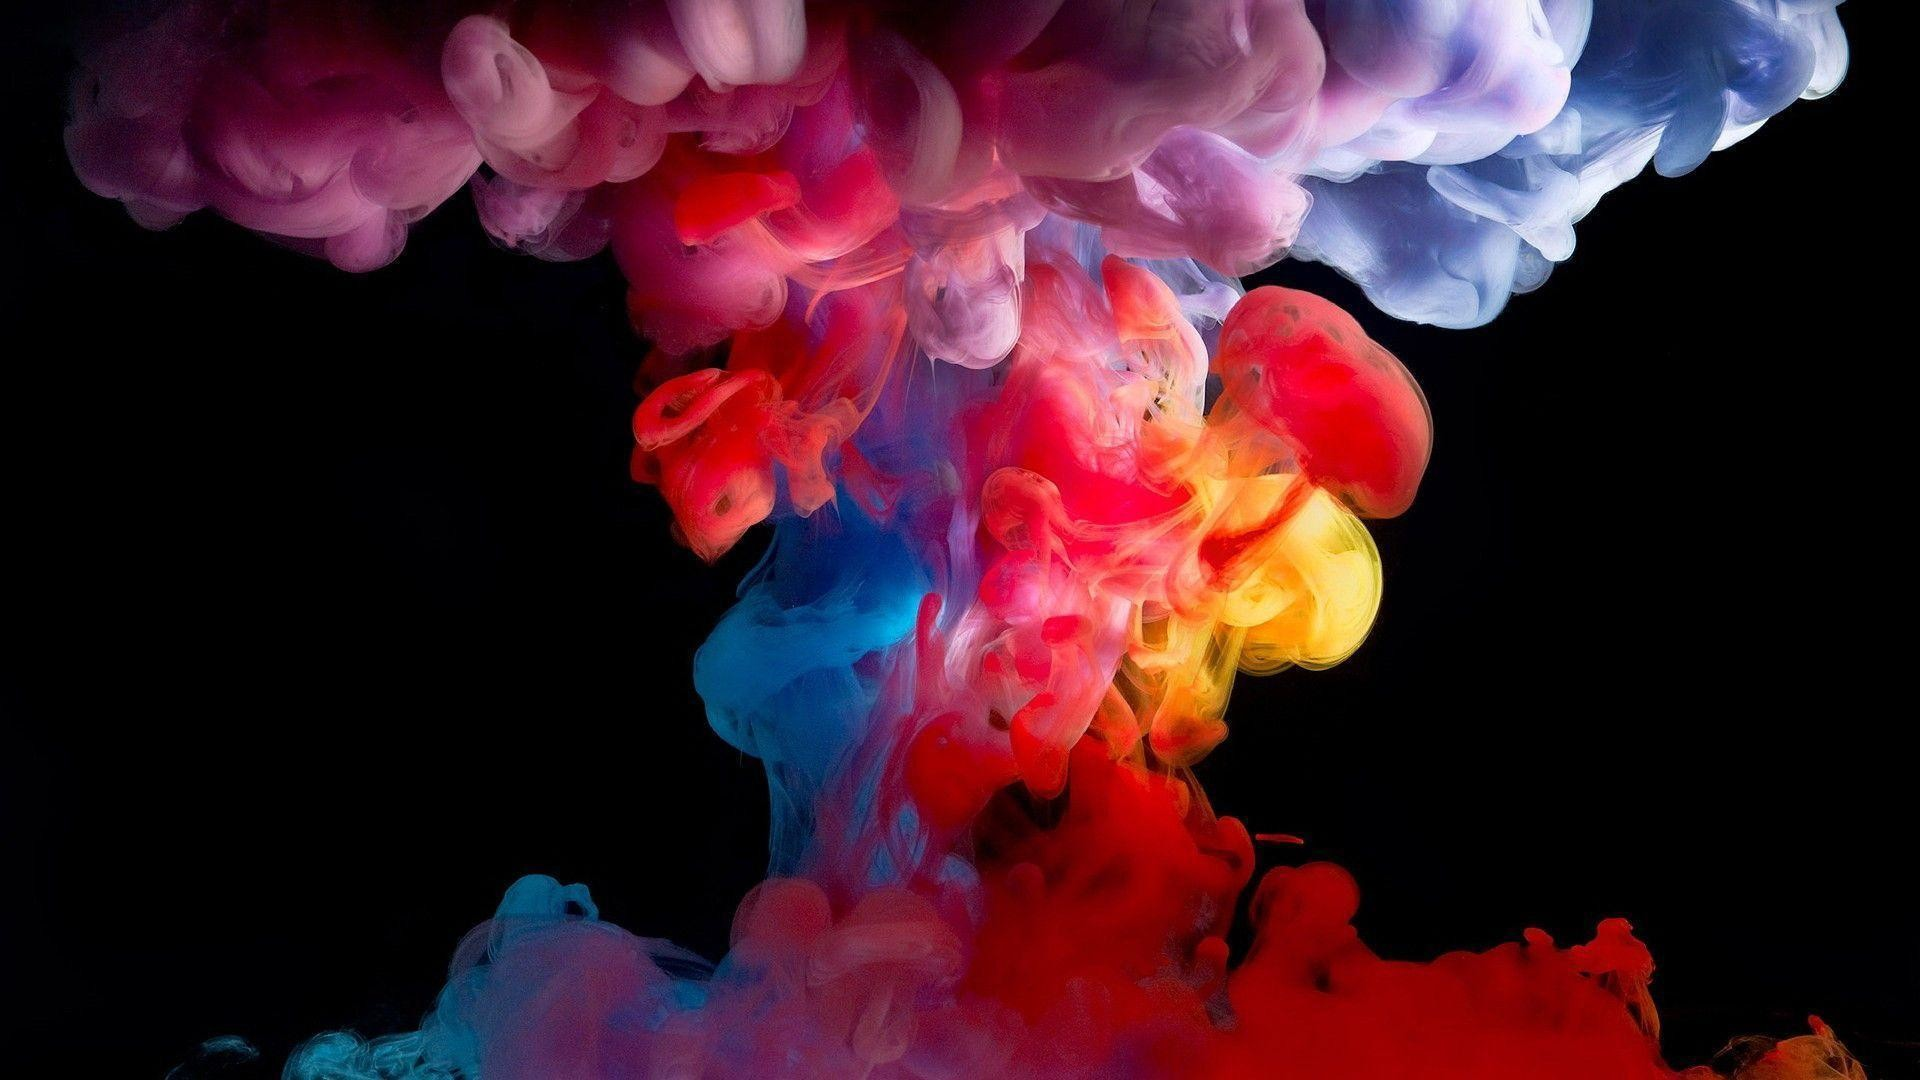 Colorful Smoke Wallpapers and Background